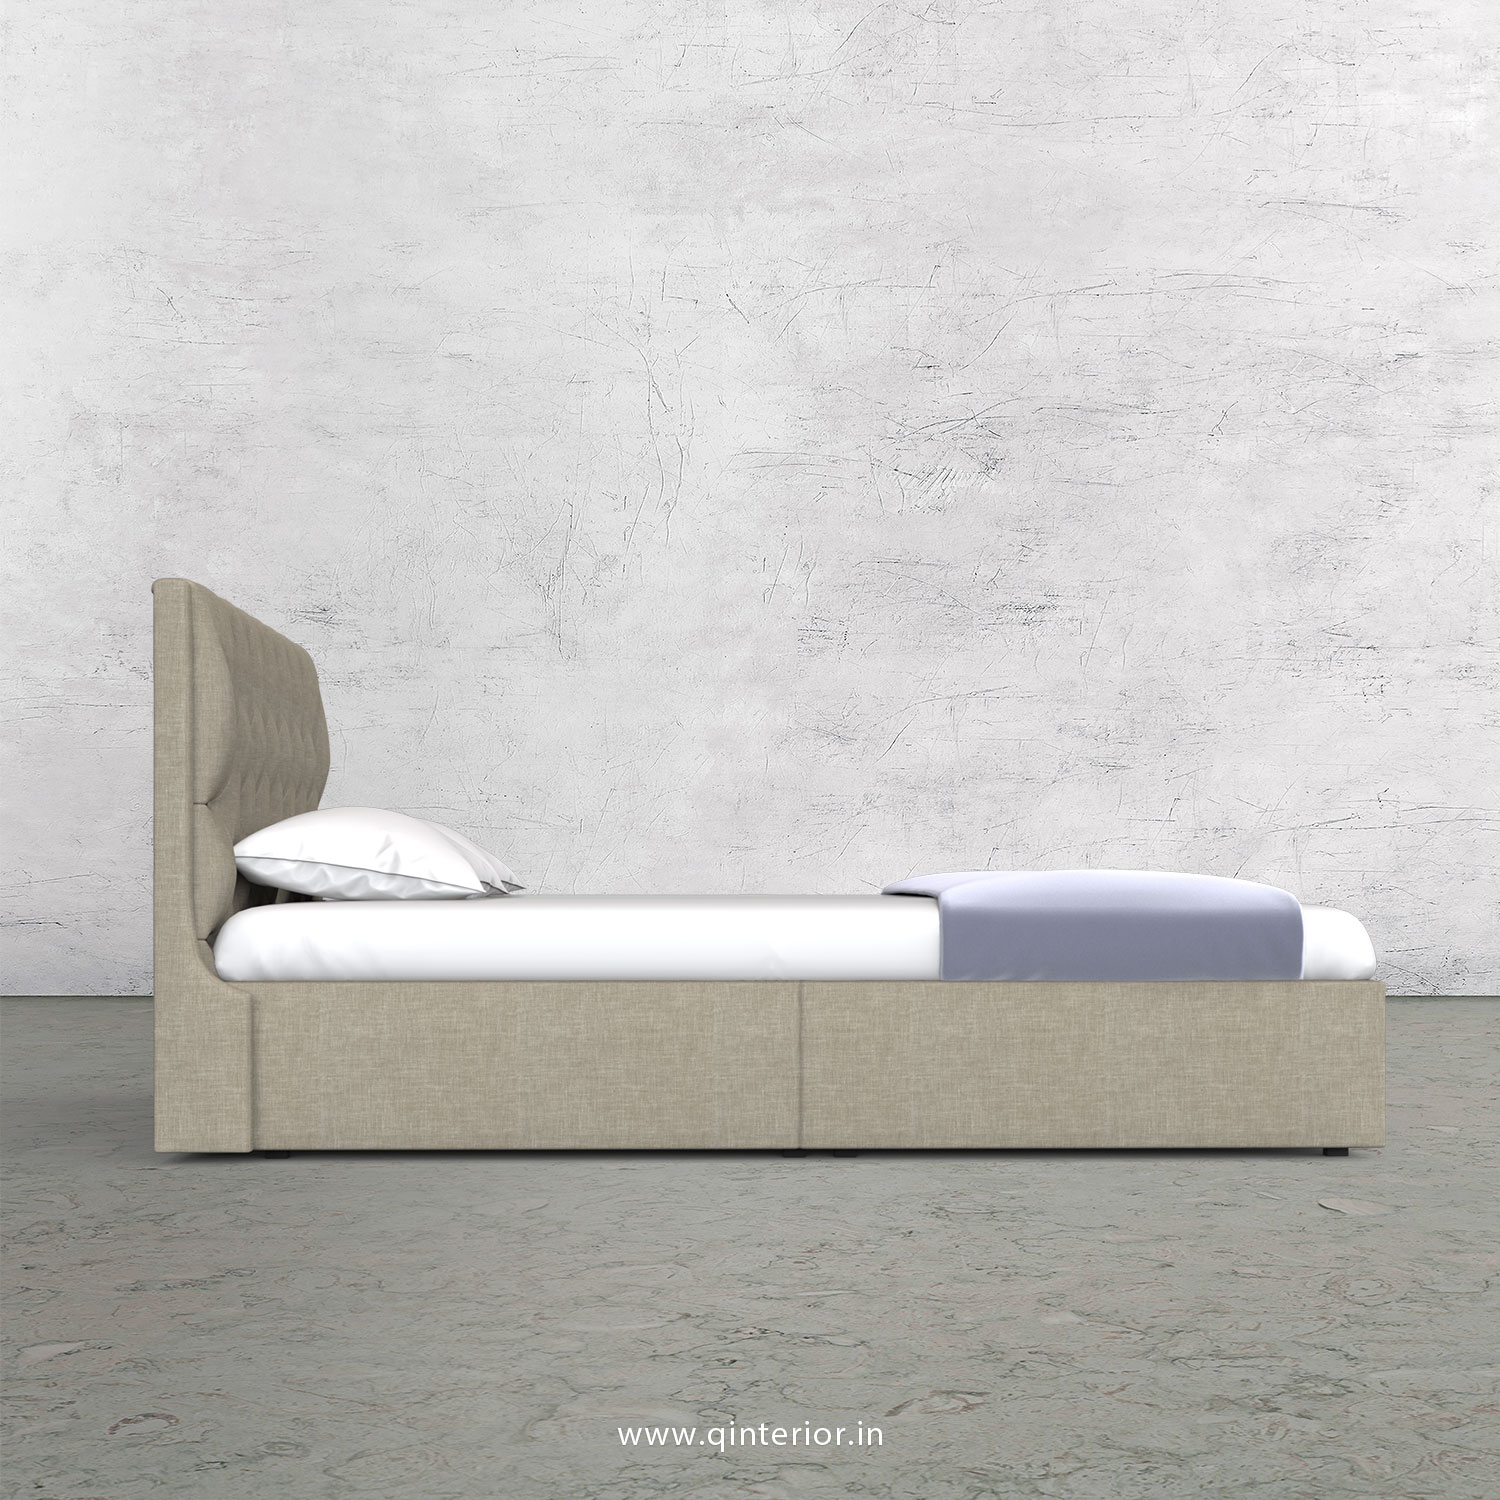 Scorpius King Size Storage Bed in Cotton Plain - KBD001 CP01